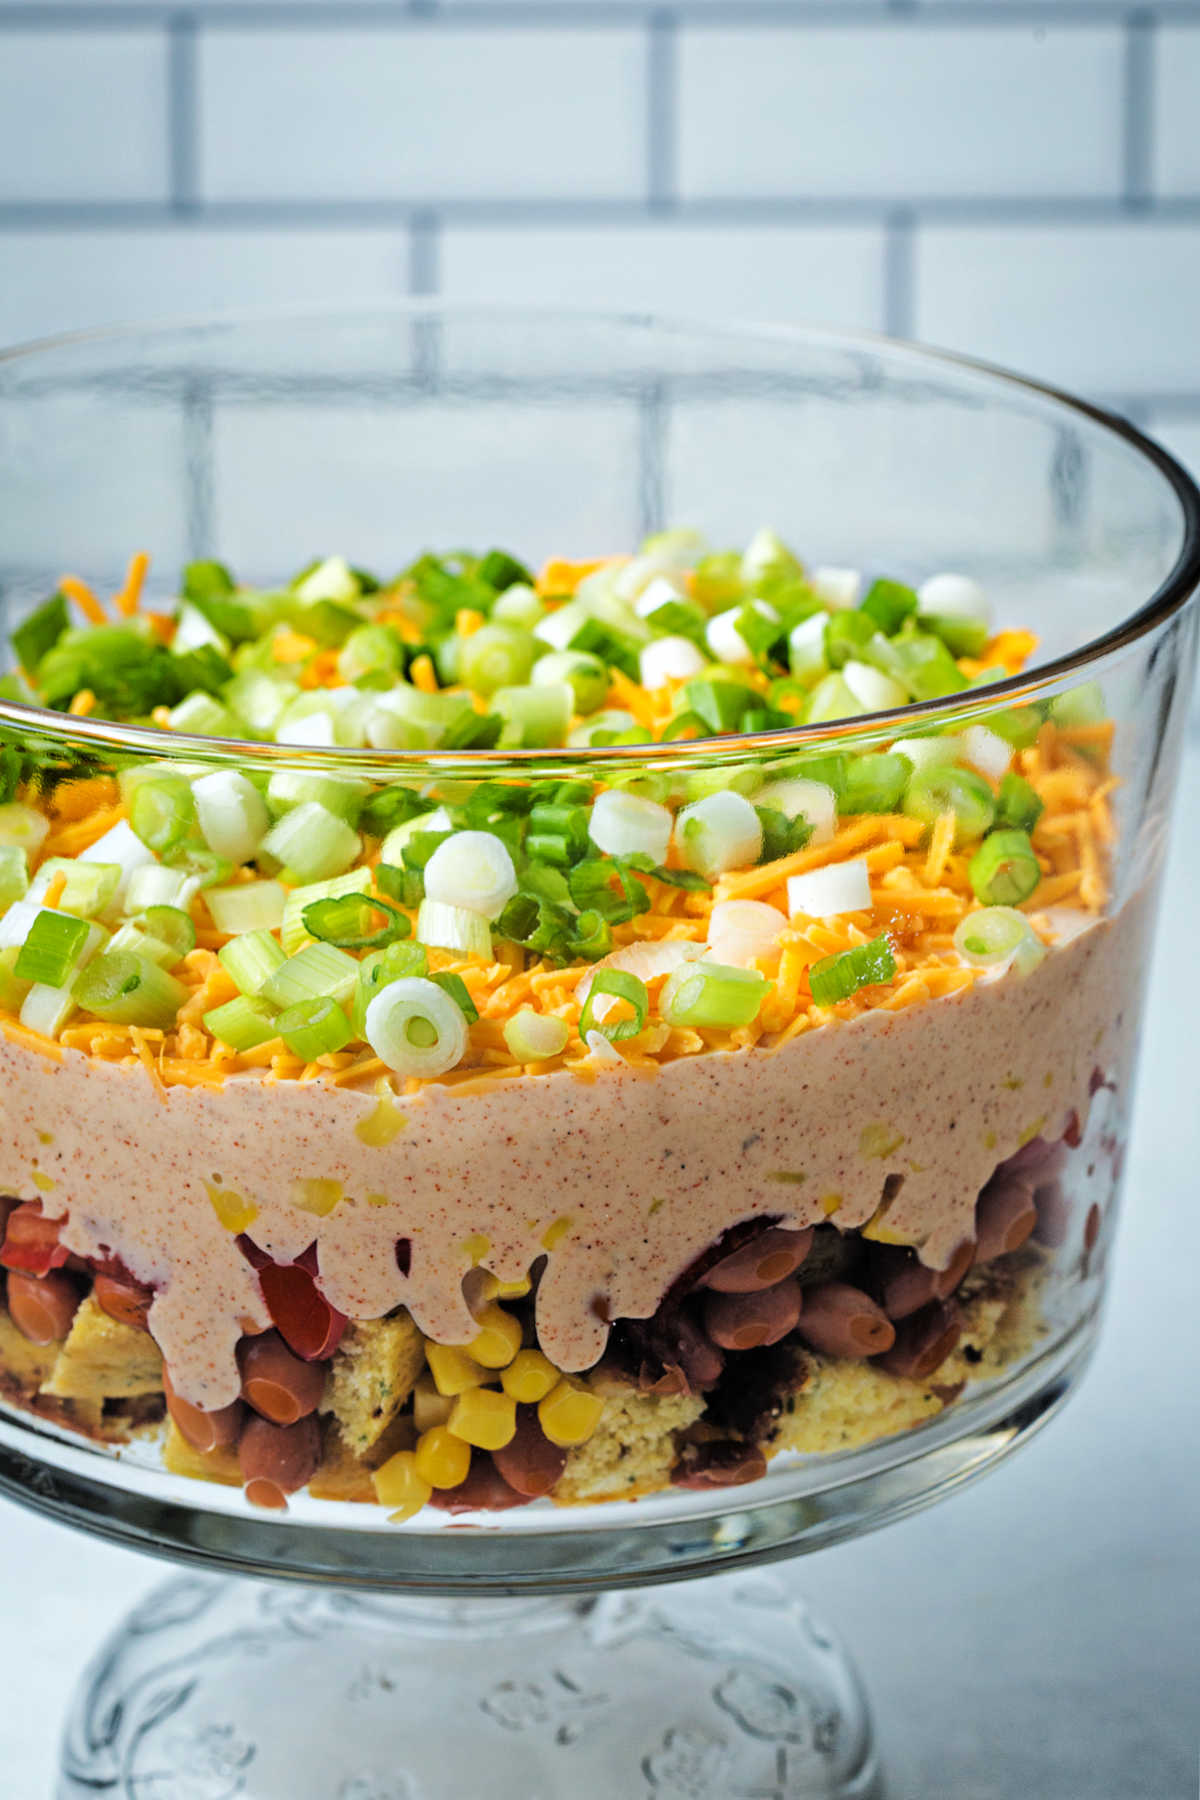 seven layer cornbread salad in a glass trifle bowl on a kitchen counter.